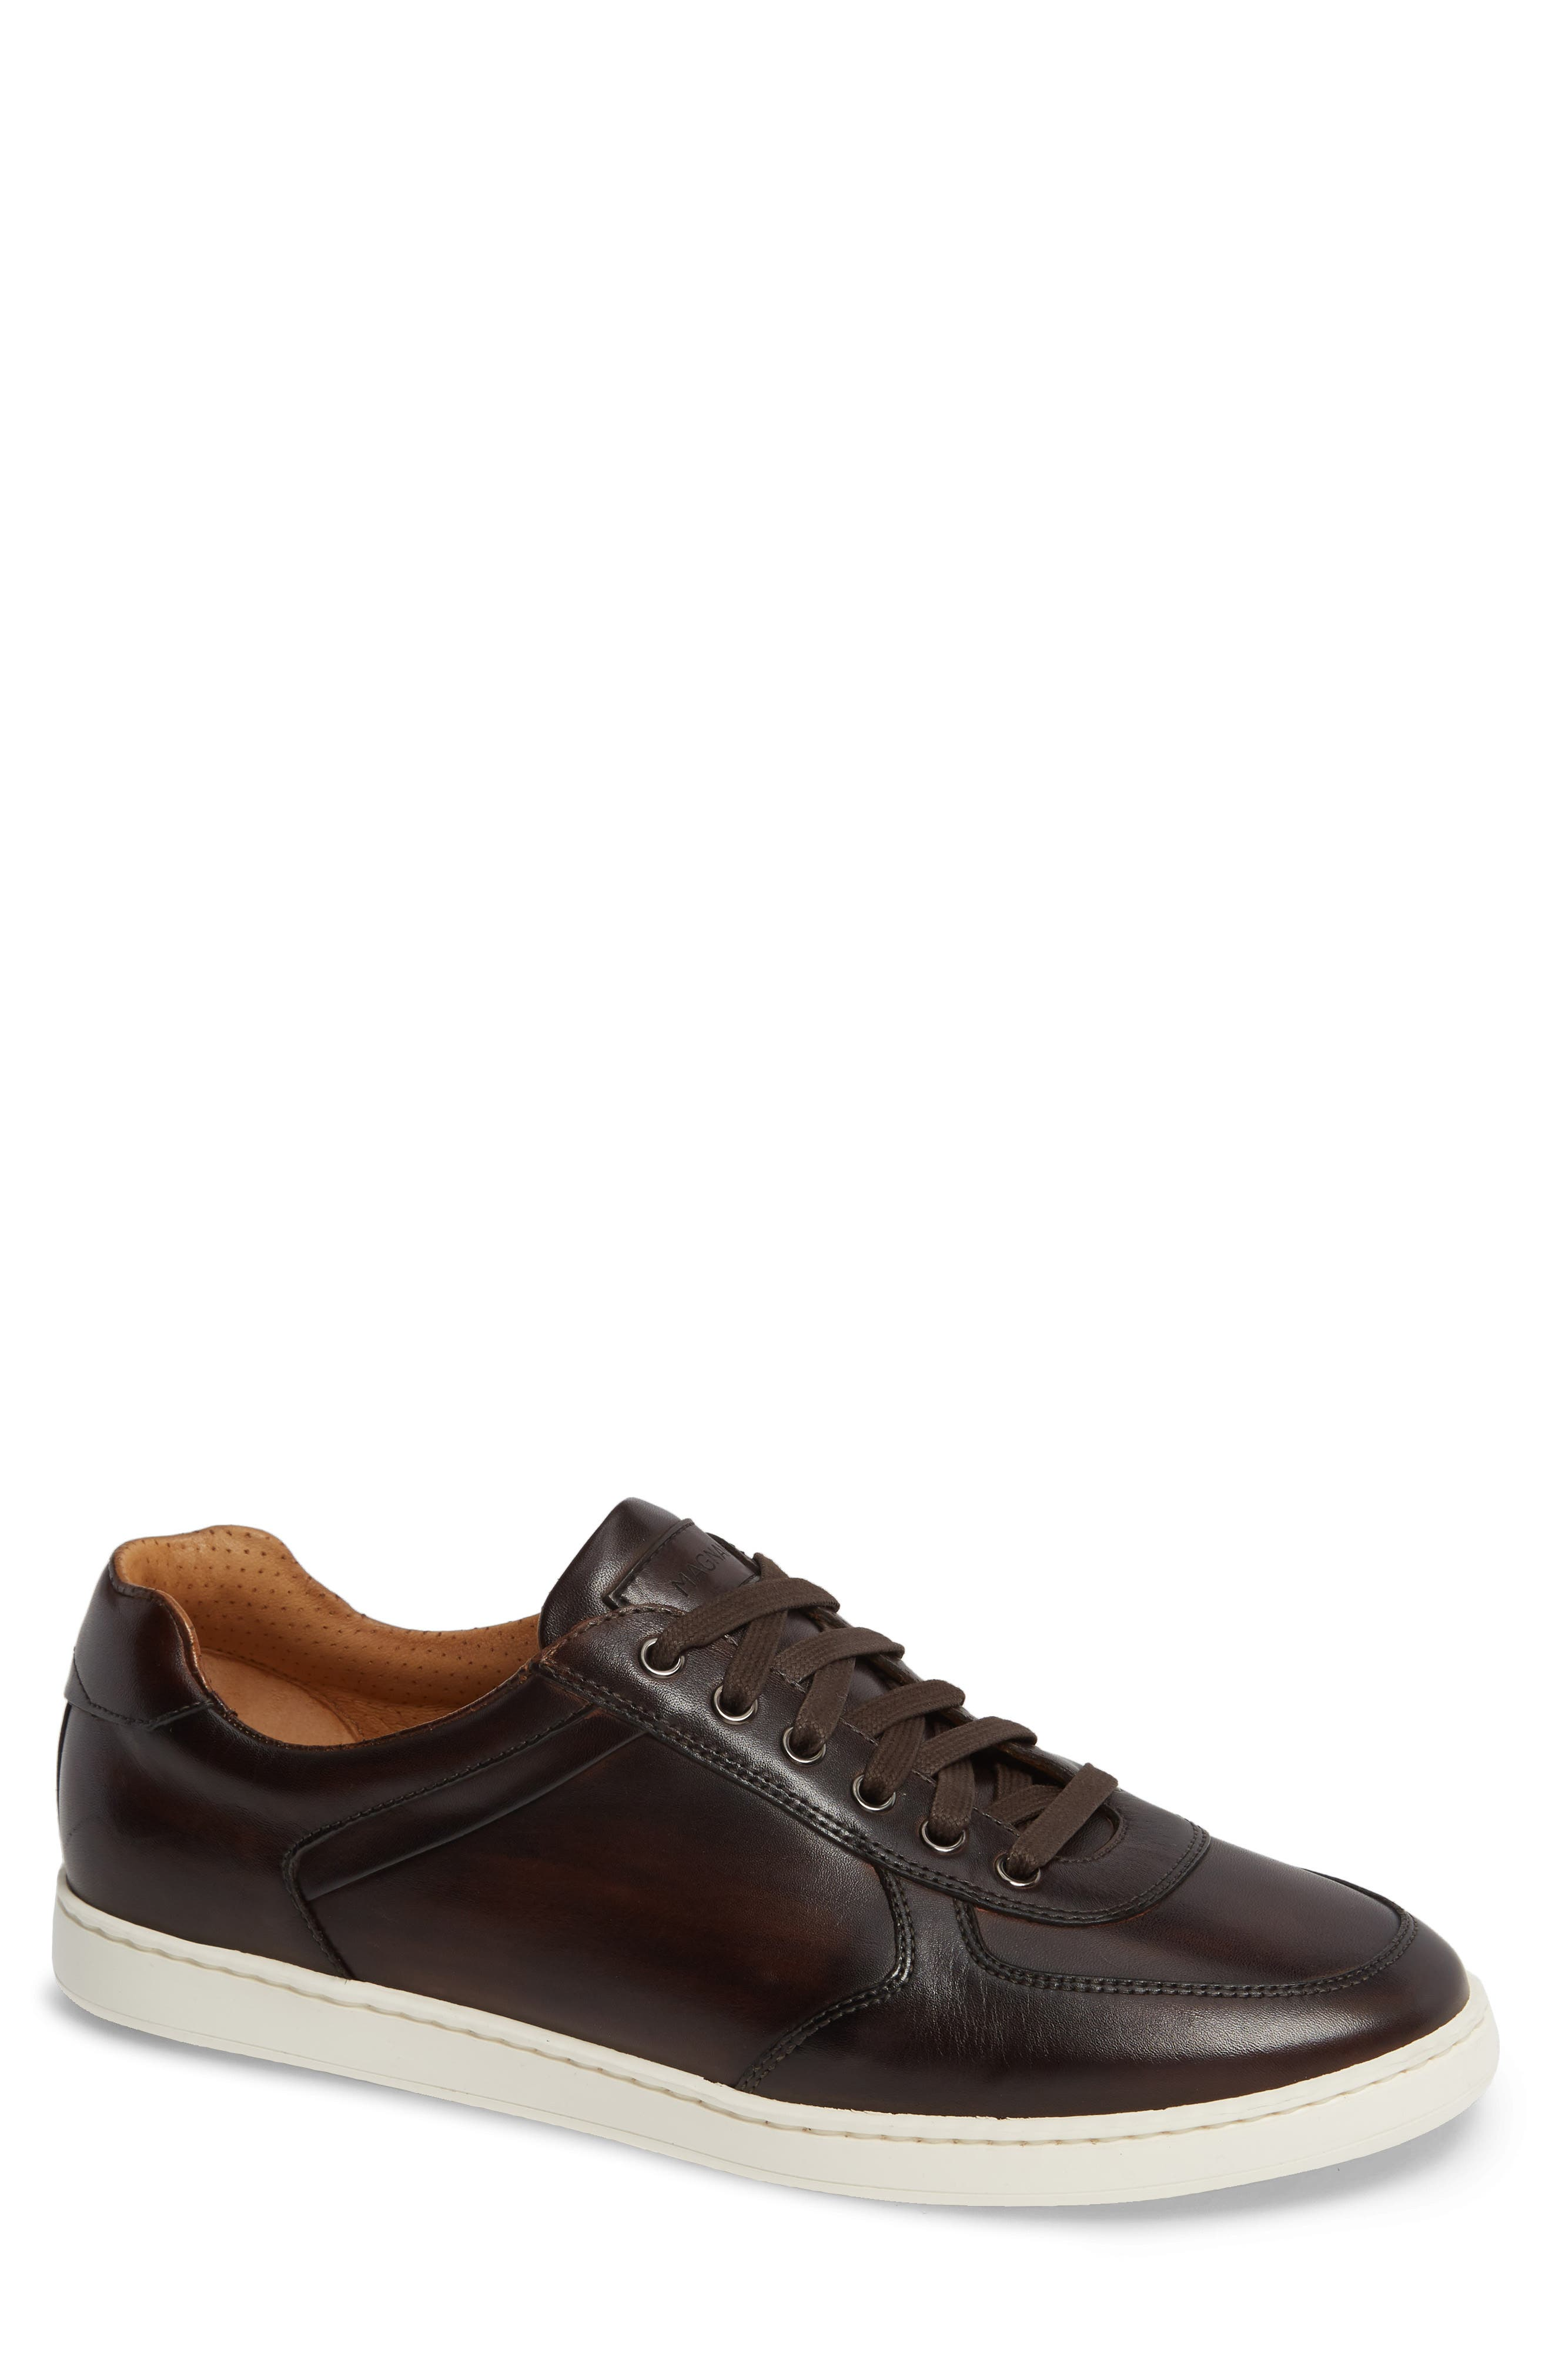 Echo Sneaker,                             Main thumbnail 1, color,                             BROWN LEATHER